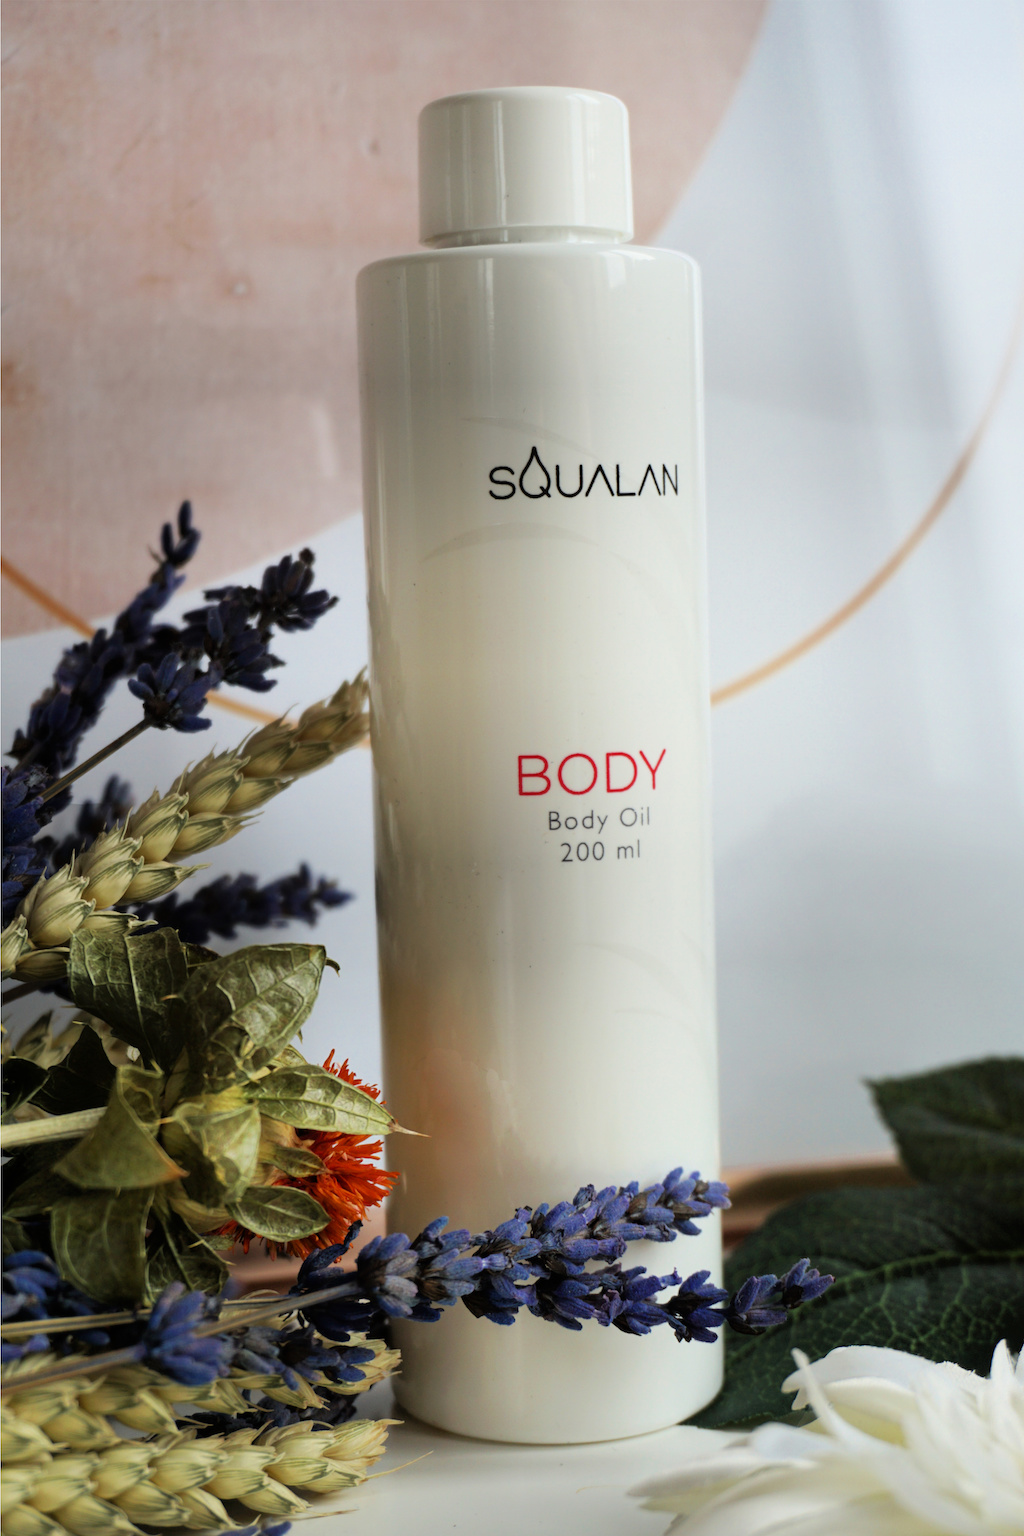 Squalan Body Oil Review